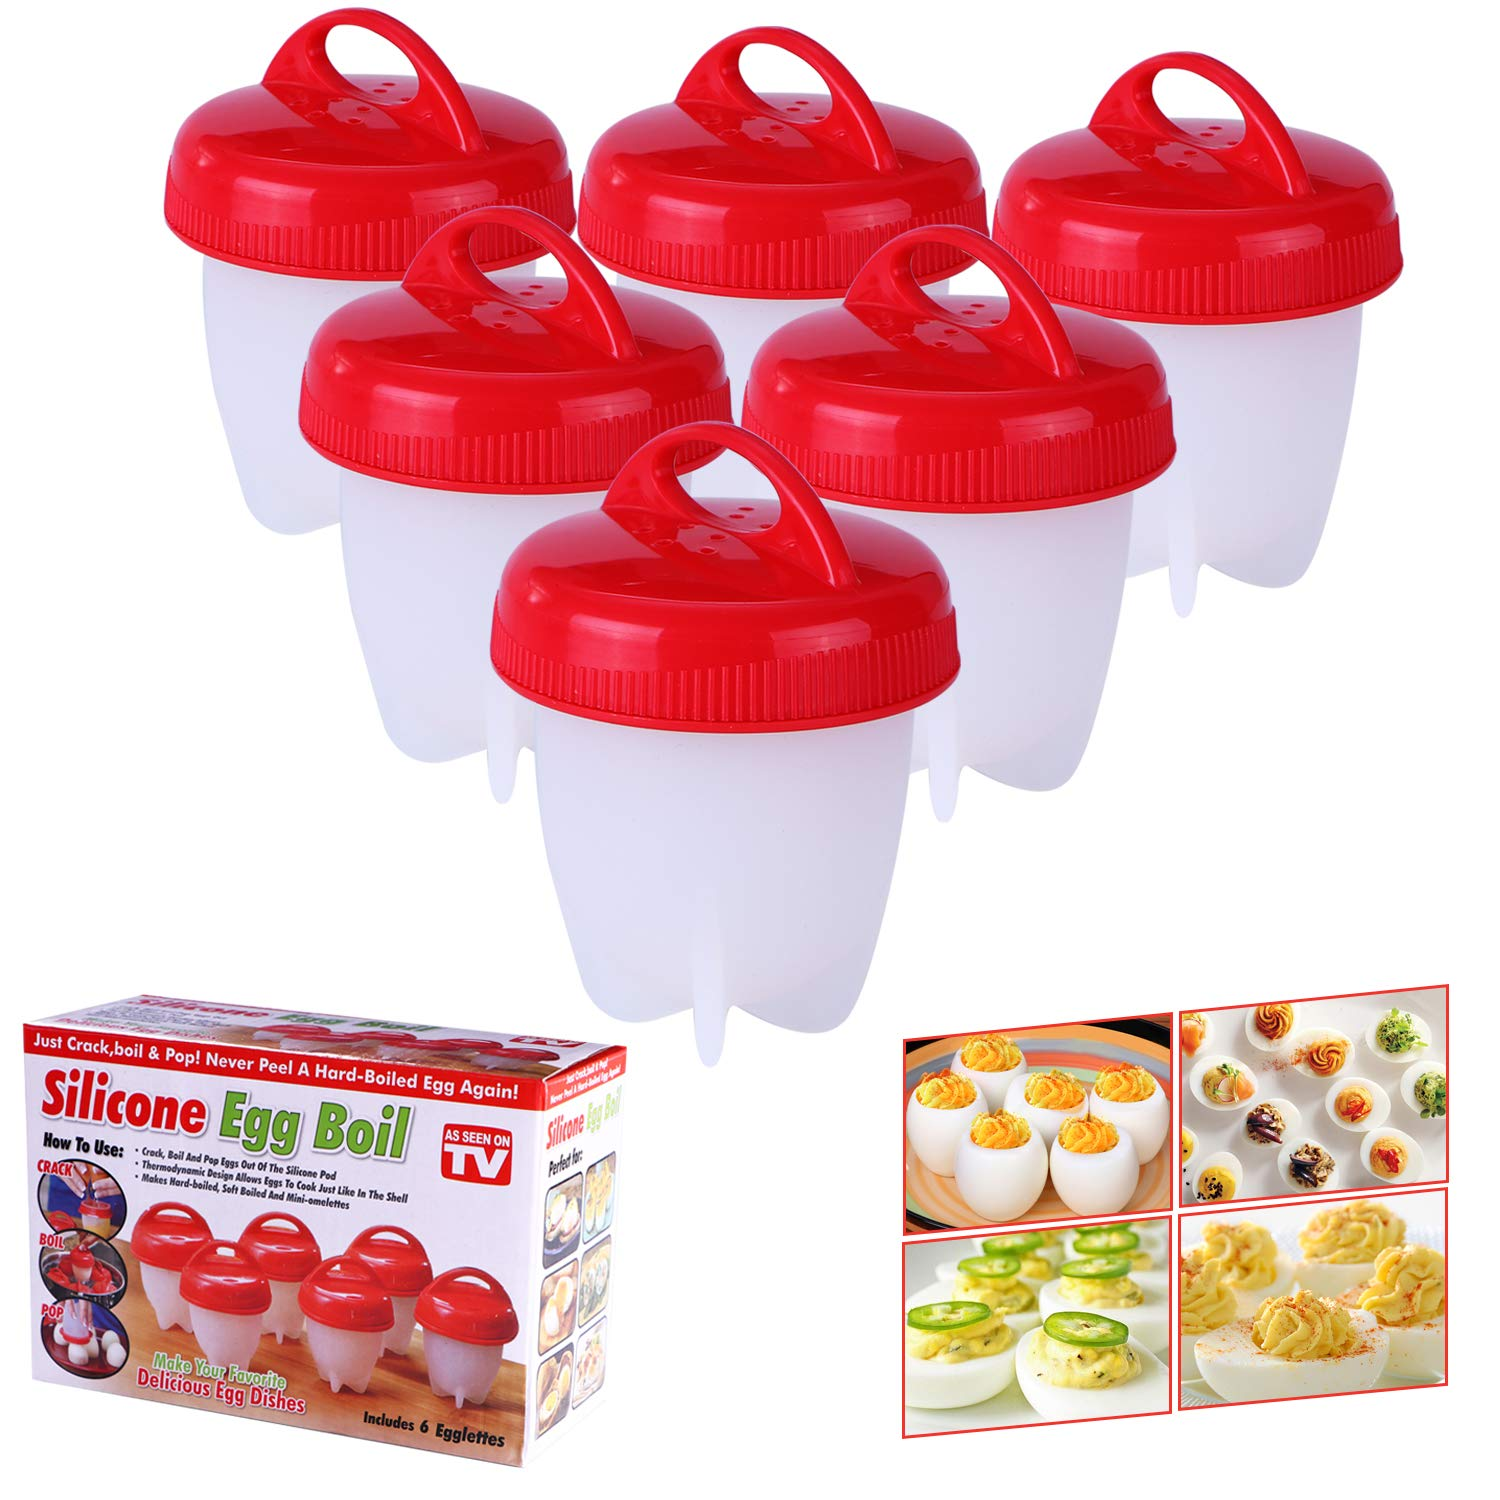 Yeahbeer Egg Cooker Hard & Soft Make,Non Stick Silicone,No Shell,Boiled,Poacher, Steamer, AS SEEN ON TV,6 pack